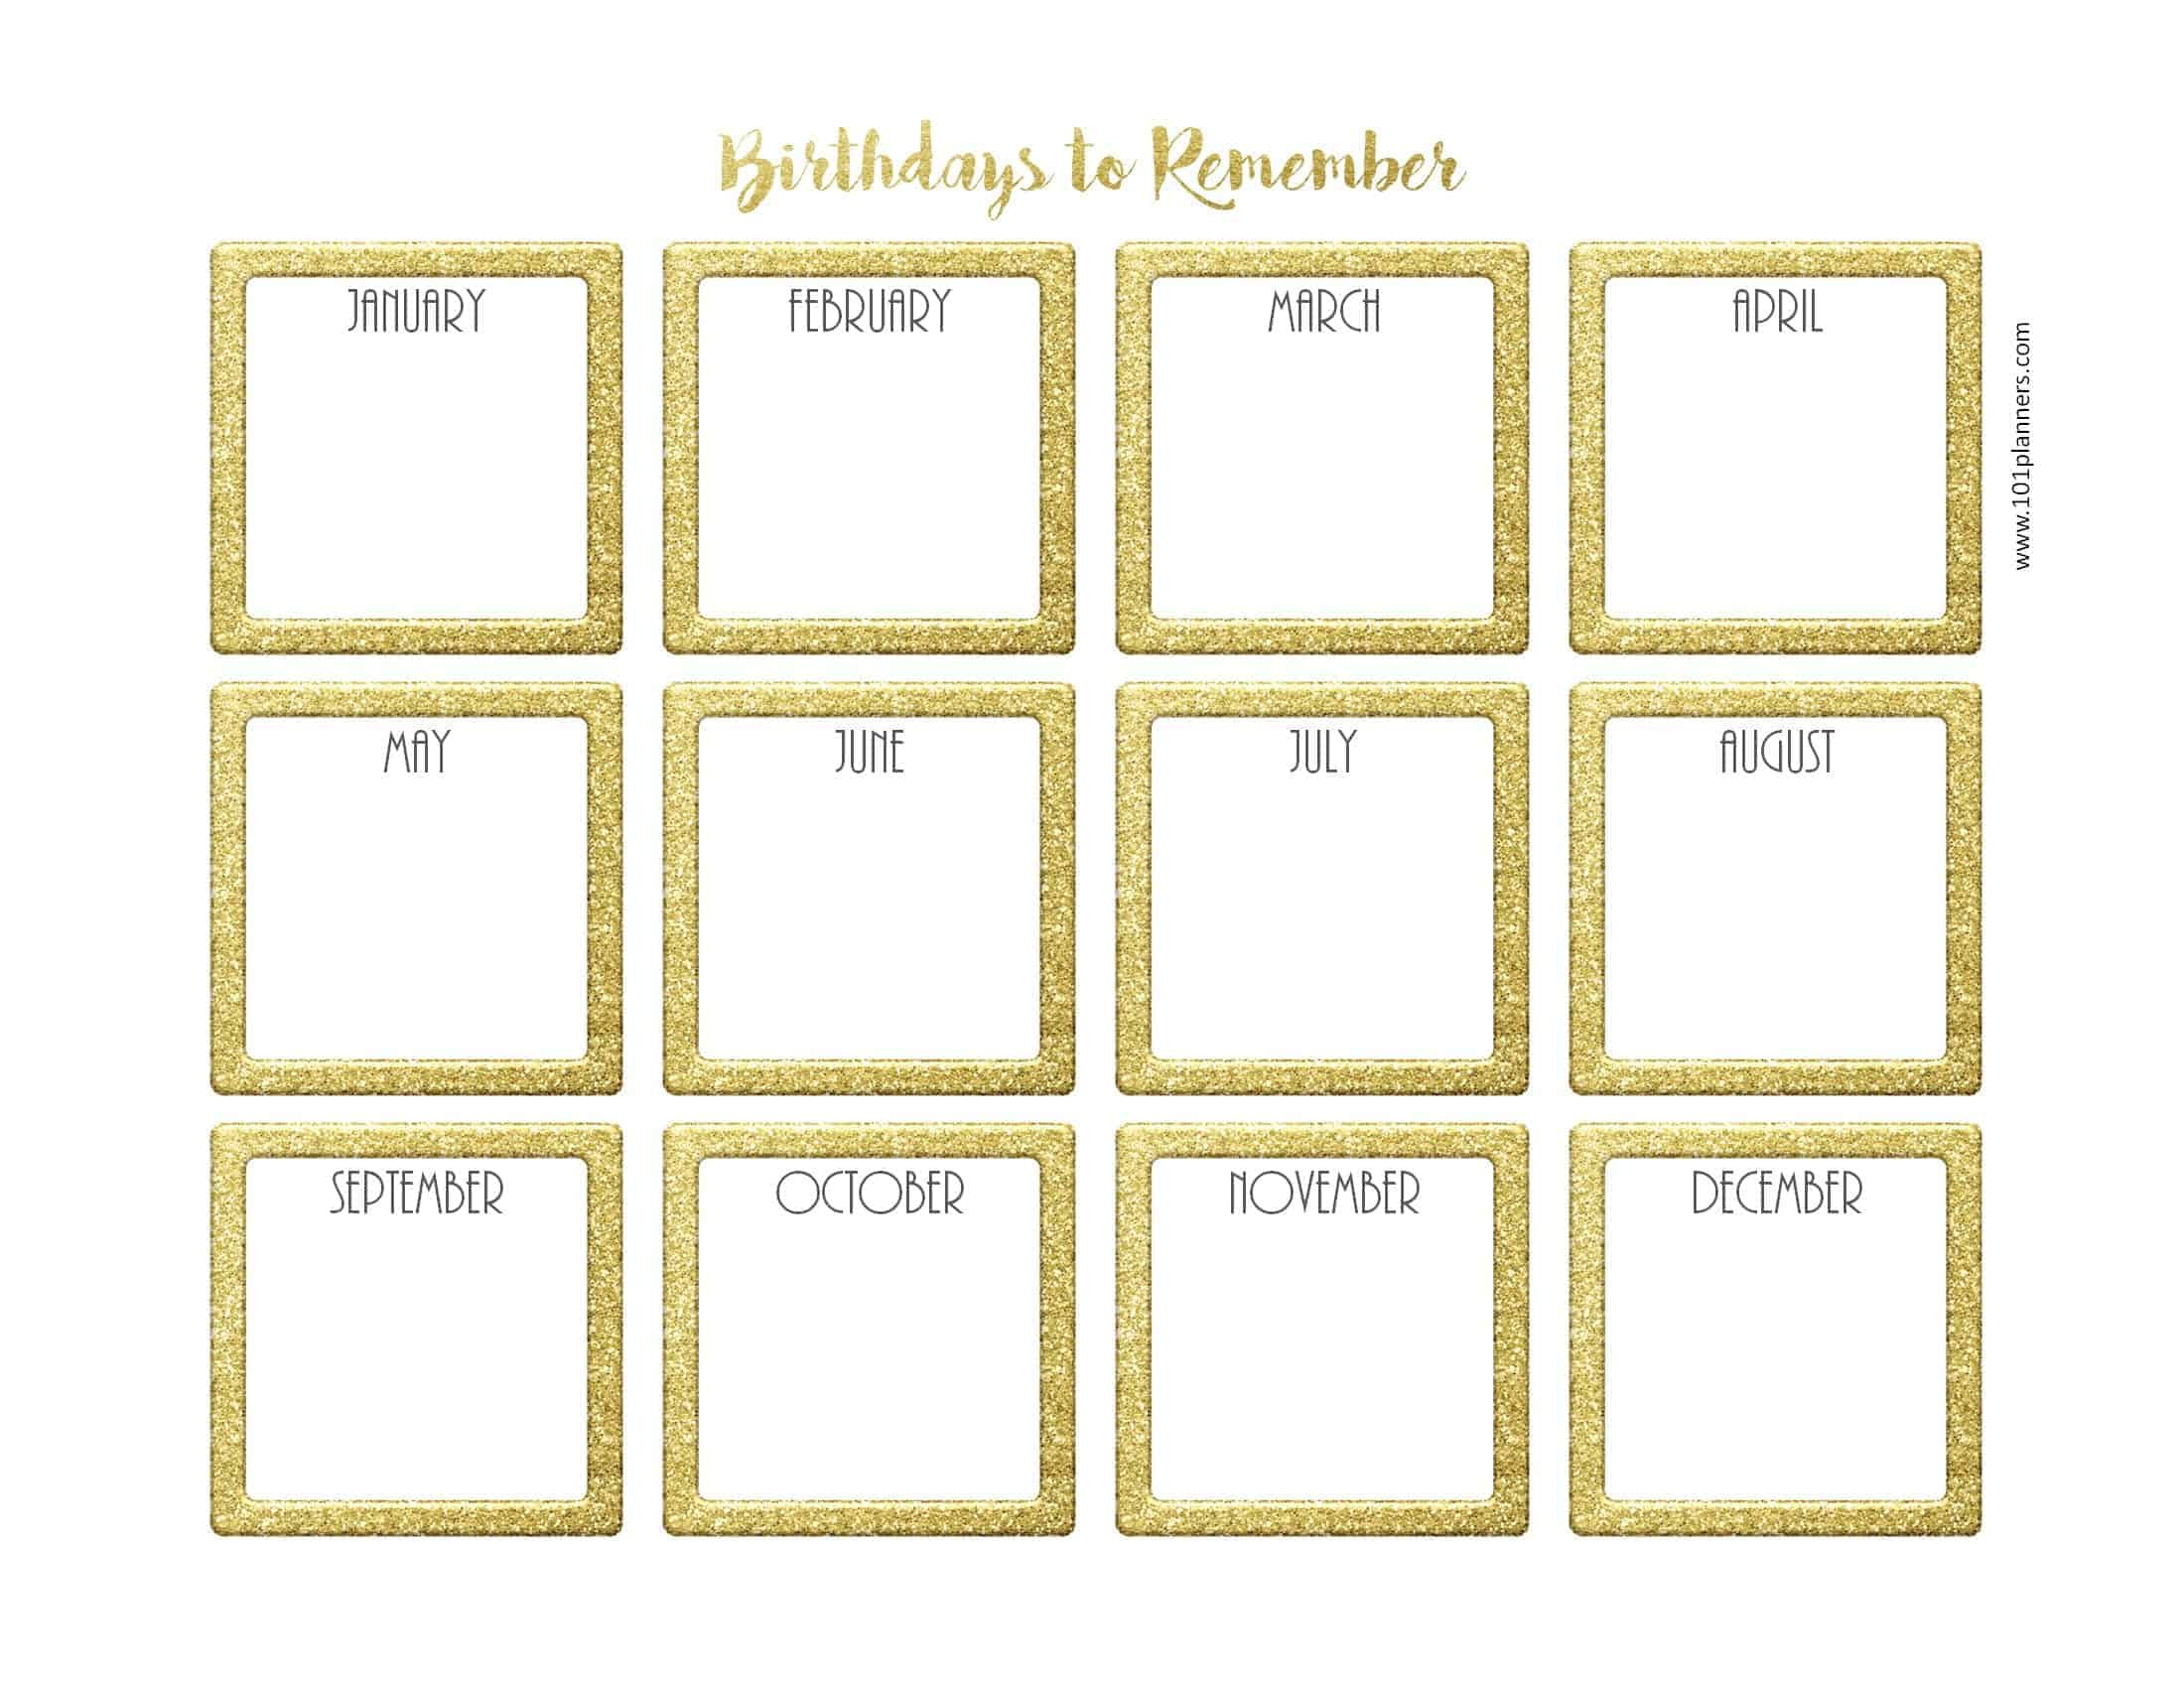 Birthday Calendar Template pertaining to Blank Birthday Calendar Template